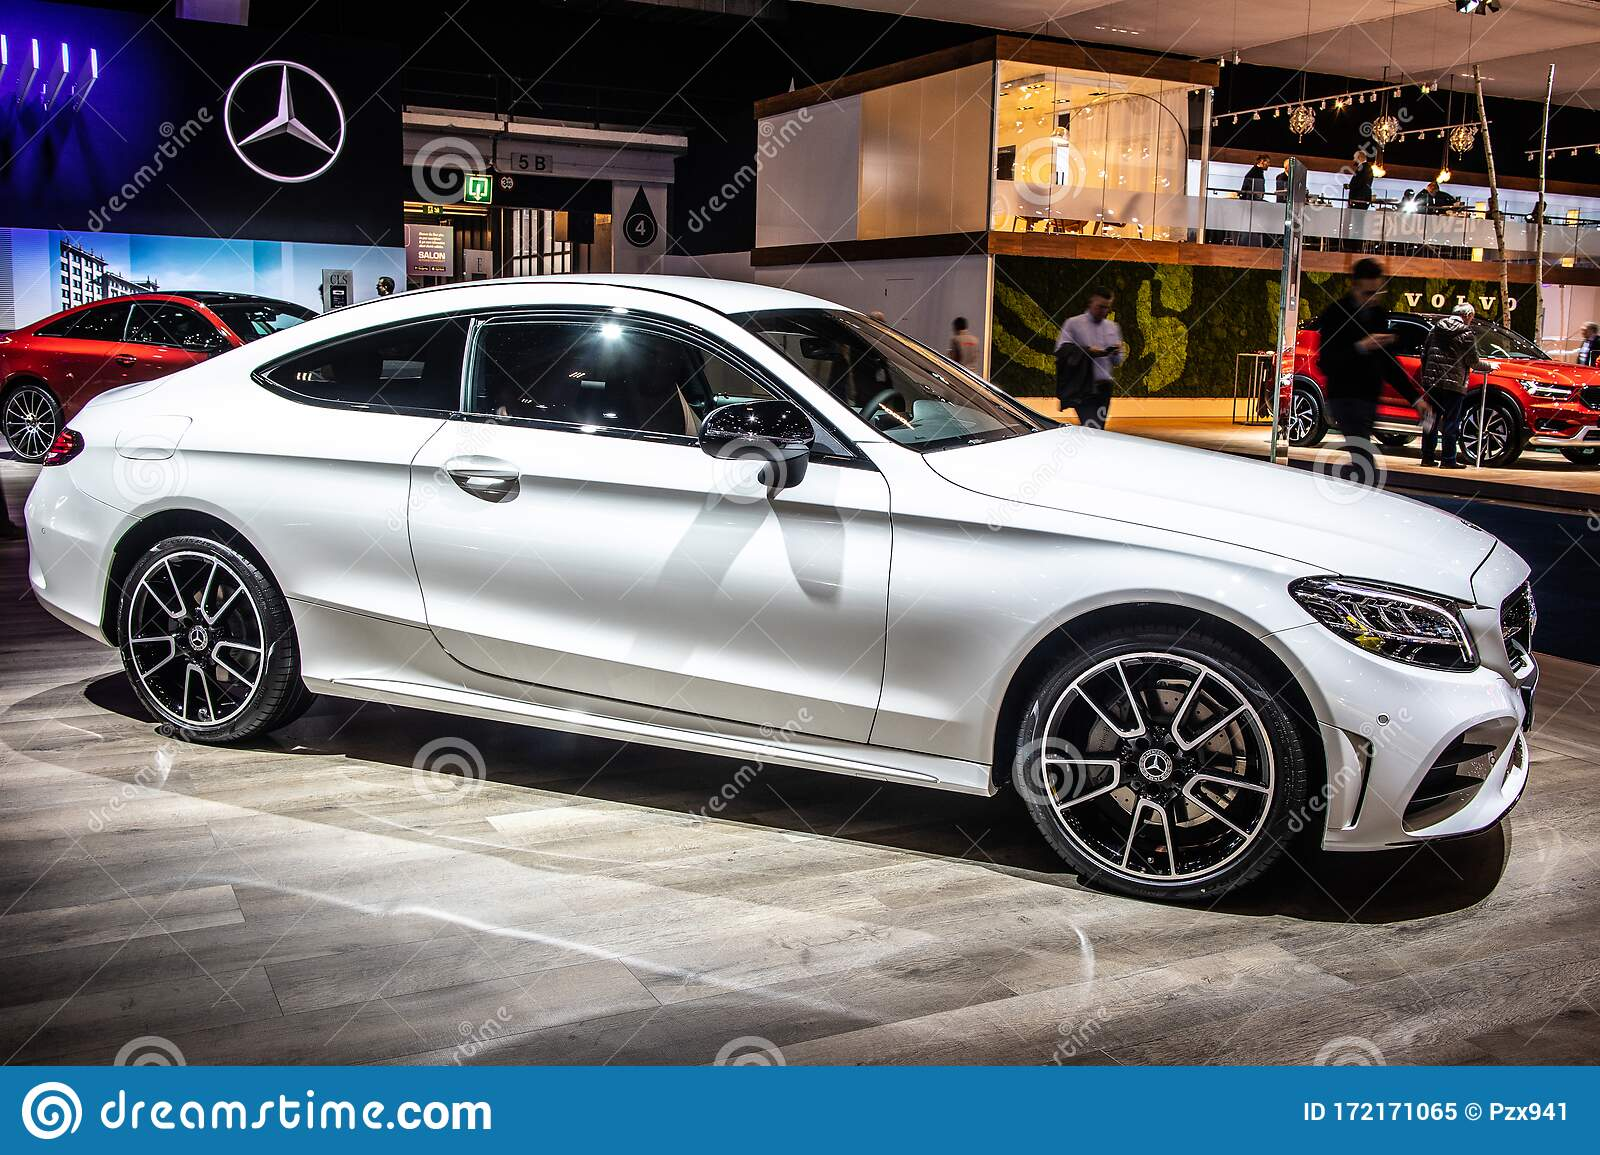 Mercedes C Classe Coupe C180 Brussels Motor Show Mra Platform 4th Gen C205 C Class Car Produced By Mercedes Benz Editorial Image Image Of Generation C180 172171065